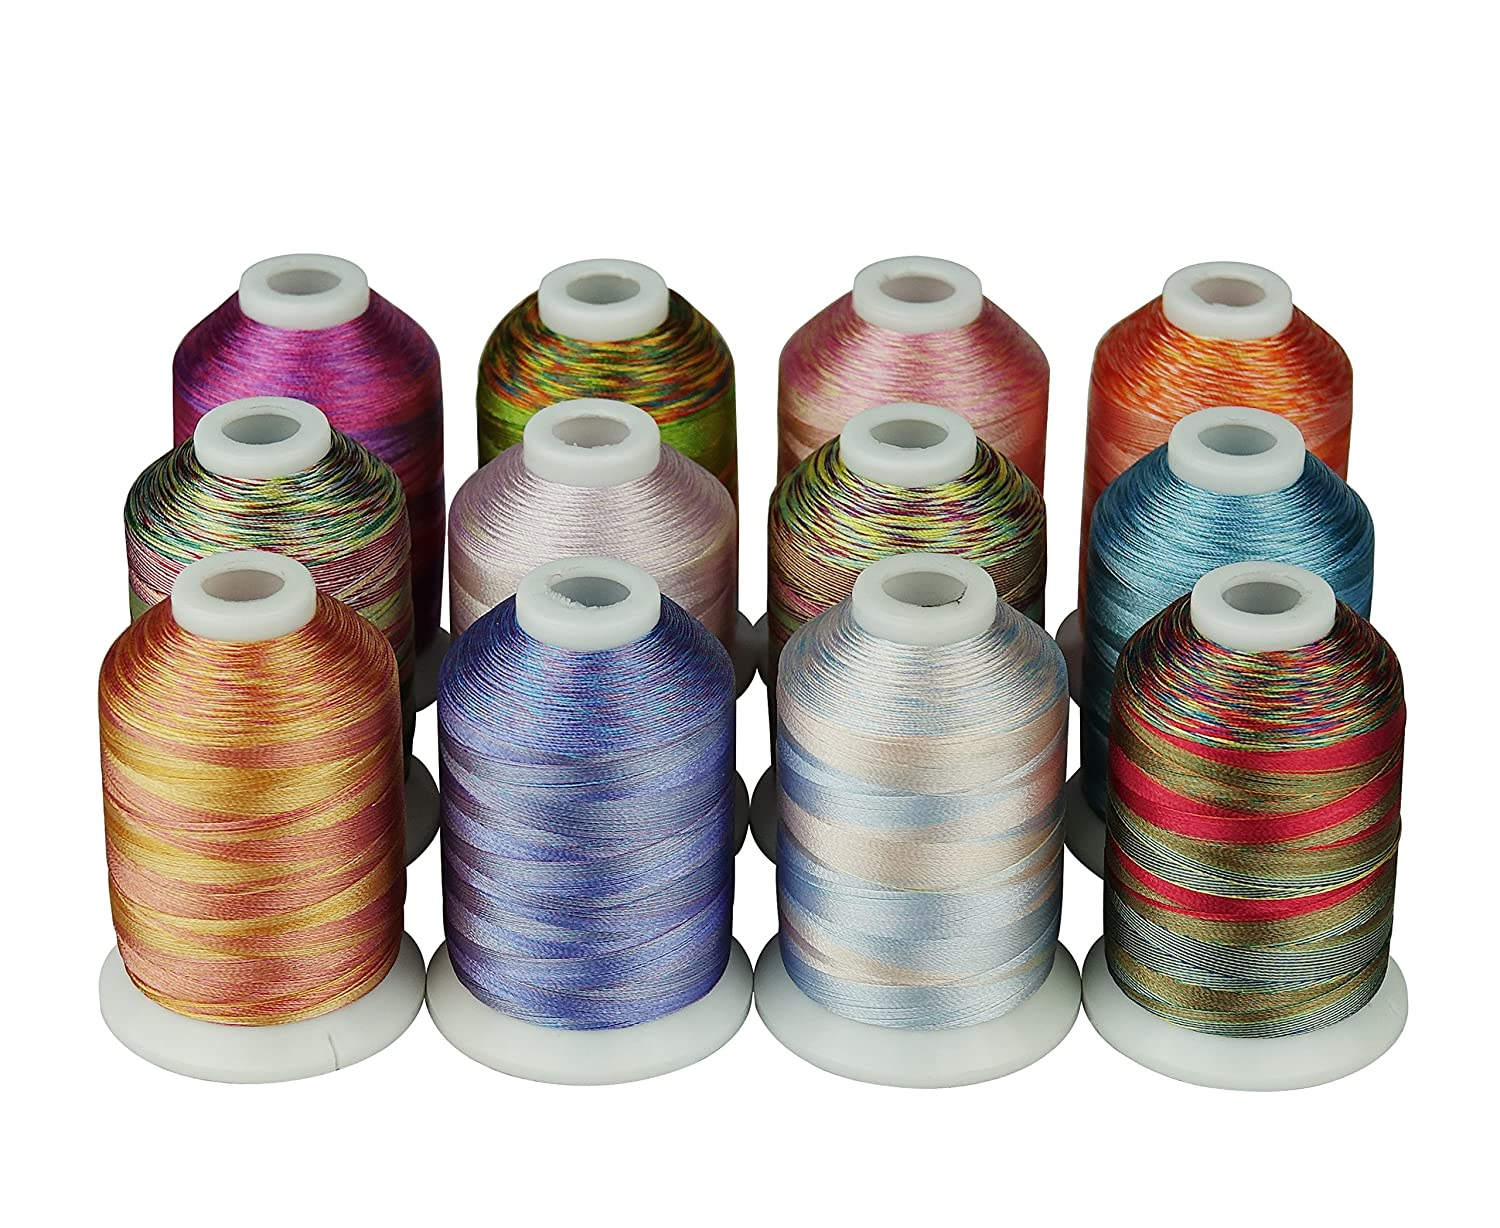 12 Multi Color Polyester Embroidery Thread 1000 Meters Each for Janome Brother Pfaff Babylock Singer Bernina Husqvaran and Most Home Embroidery Machines CR INDUSTRY 4337015912